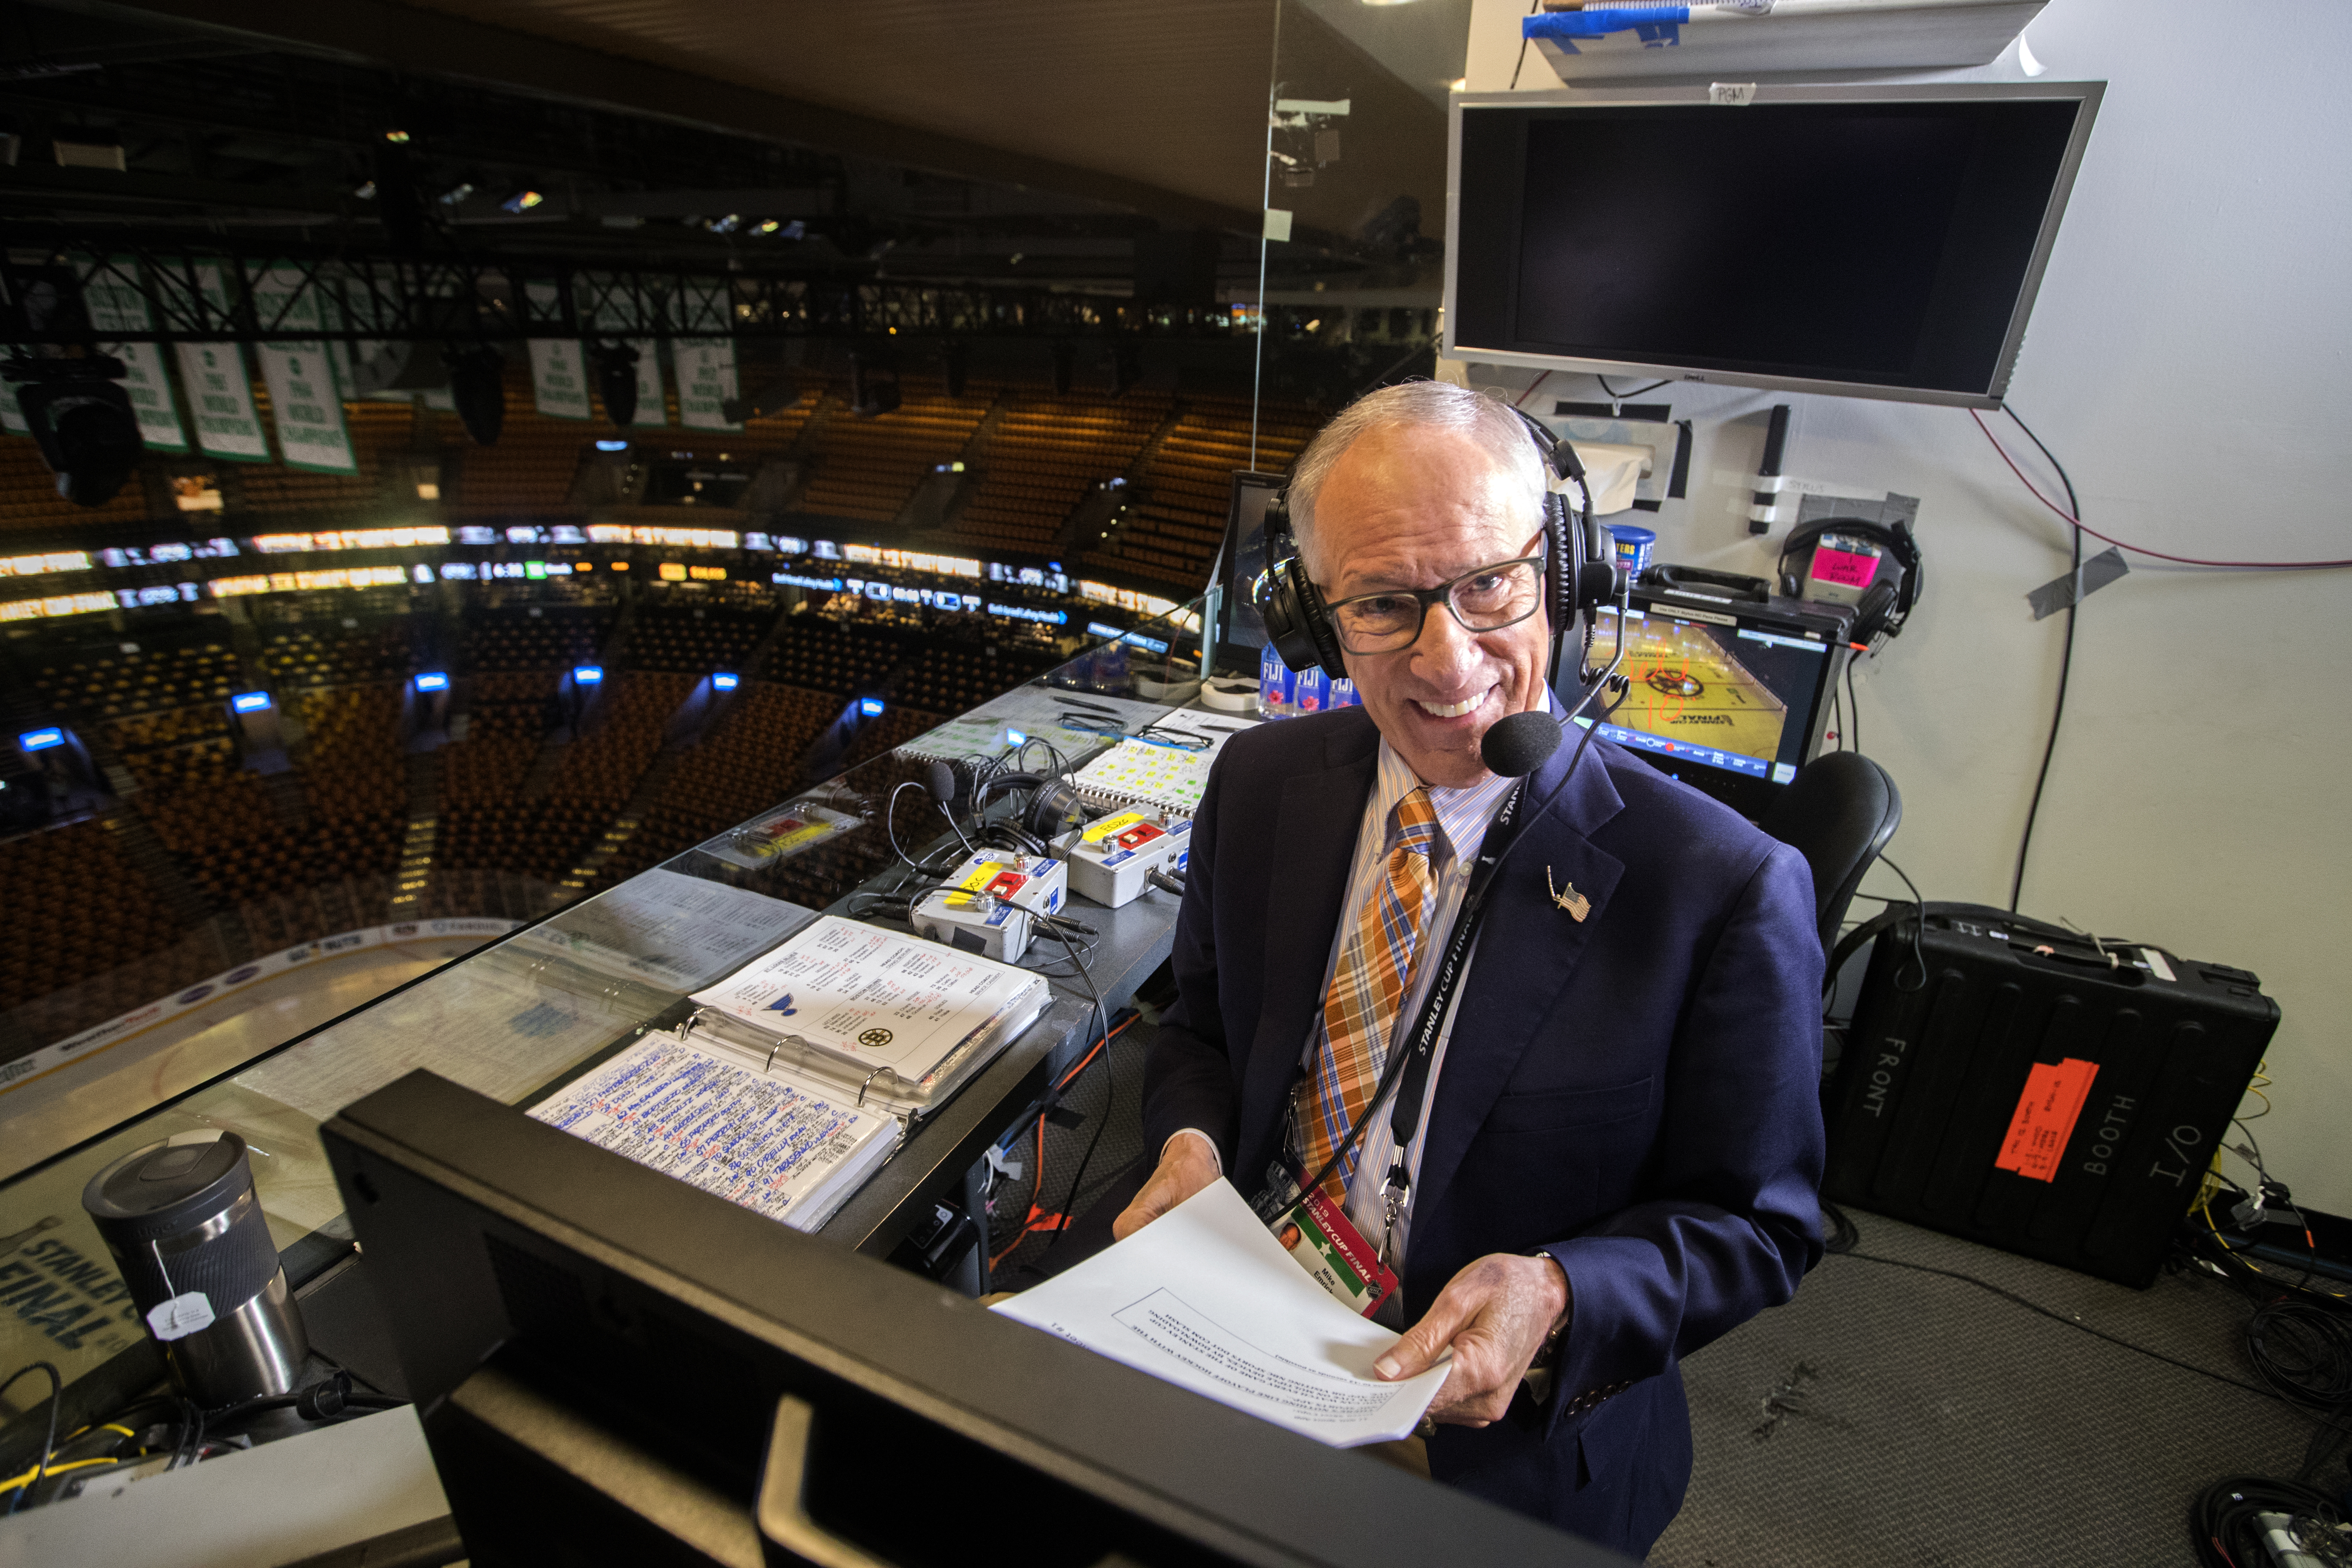 NBC Hockey Play-By-Play Announcer Mike Emrick